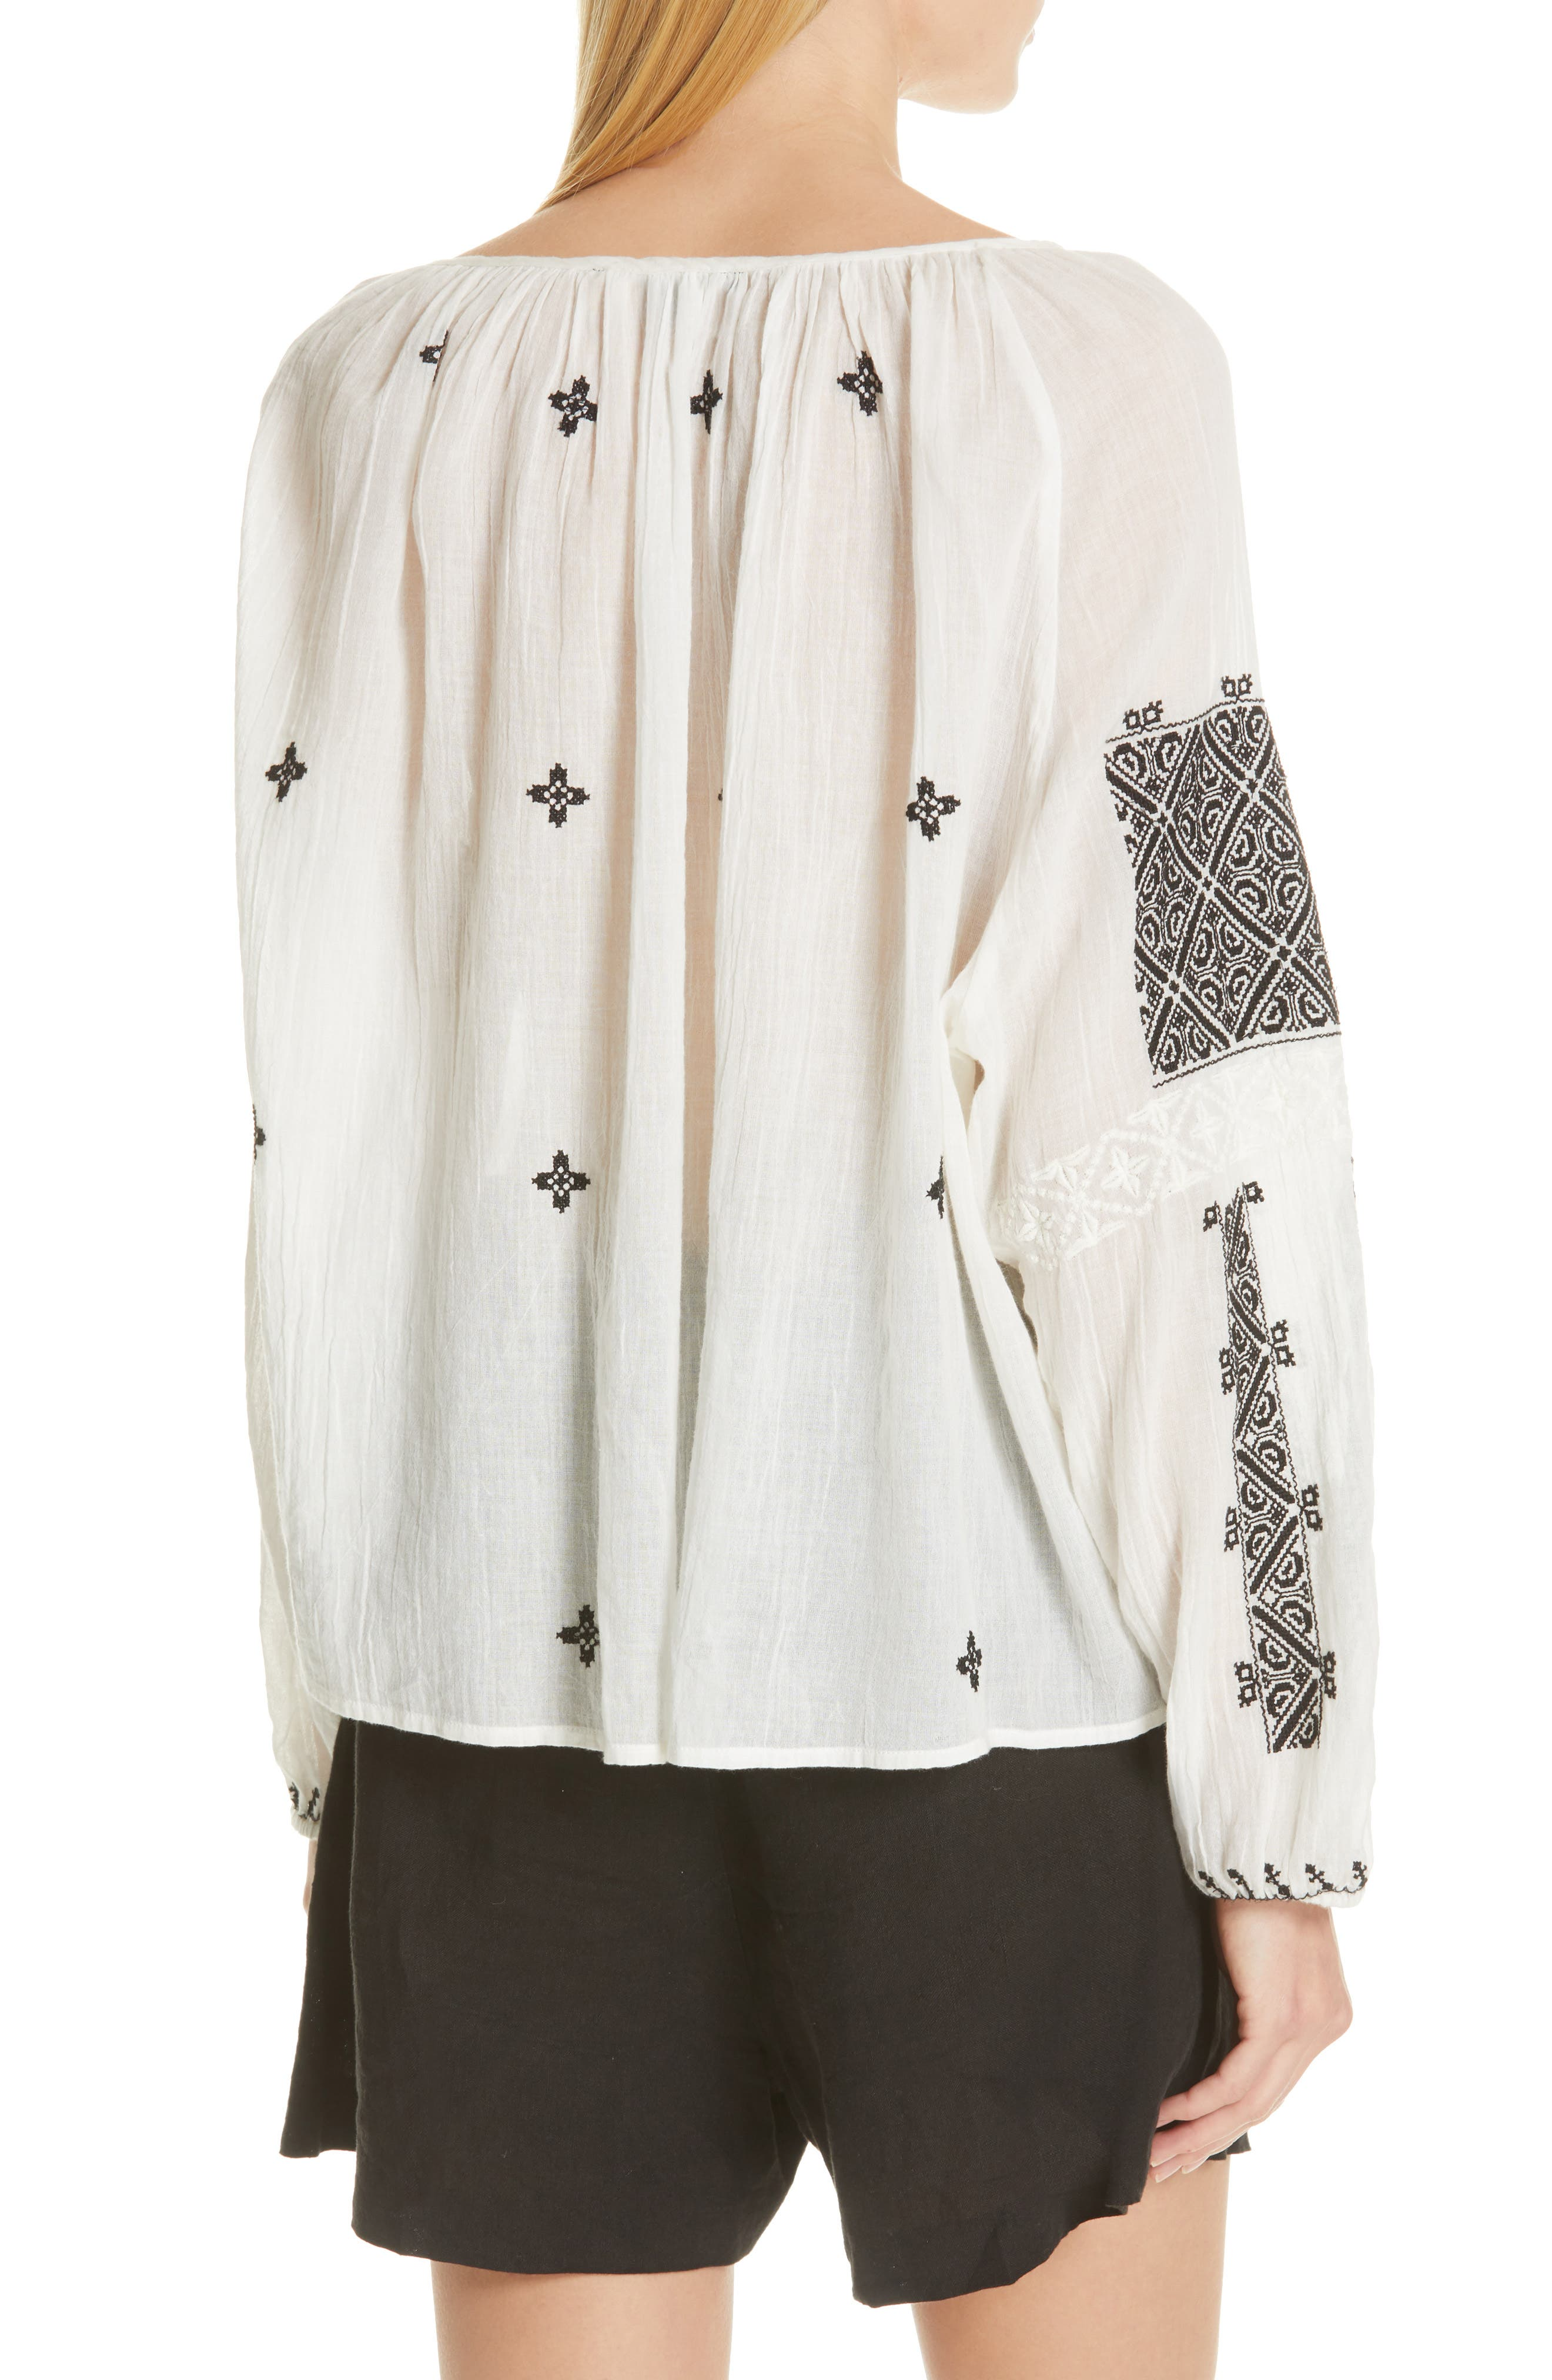 NILI LOTAN, Alassio Embroidered Blouse, Alternate thumbnail 2, color, IVORY WITH BLACK EMBROIDERY